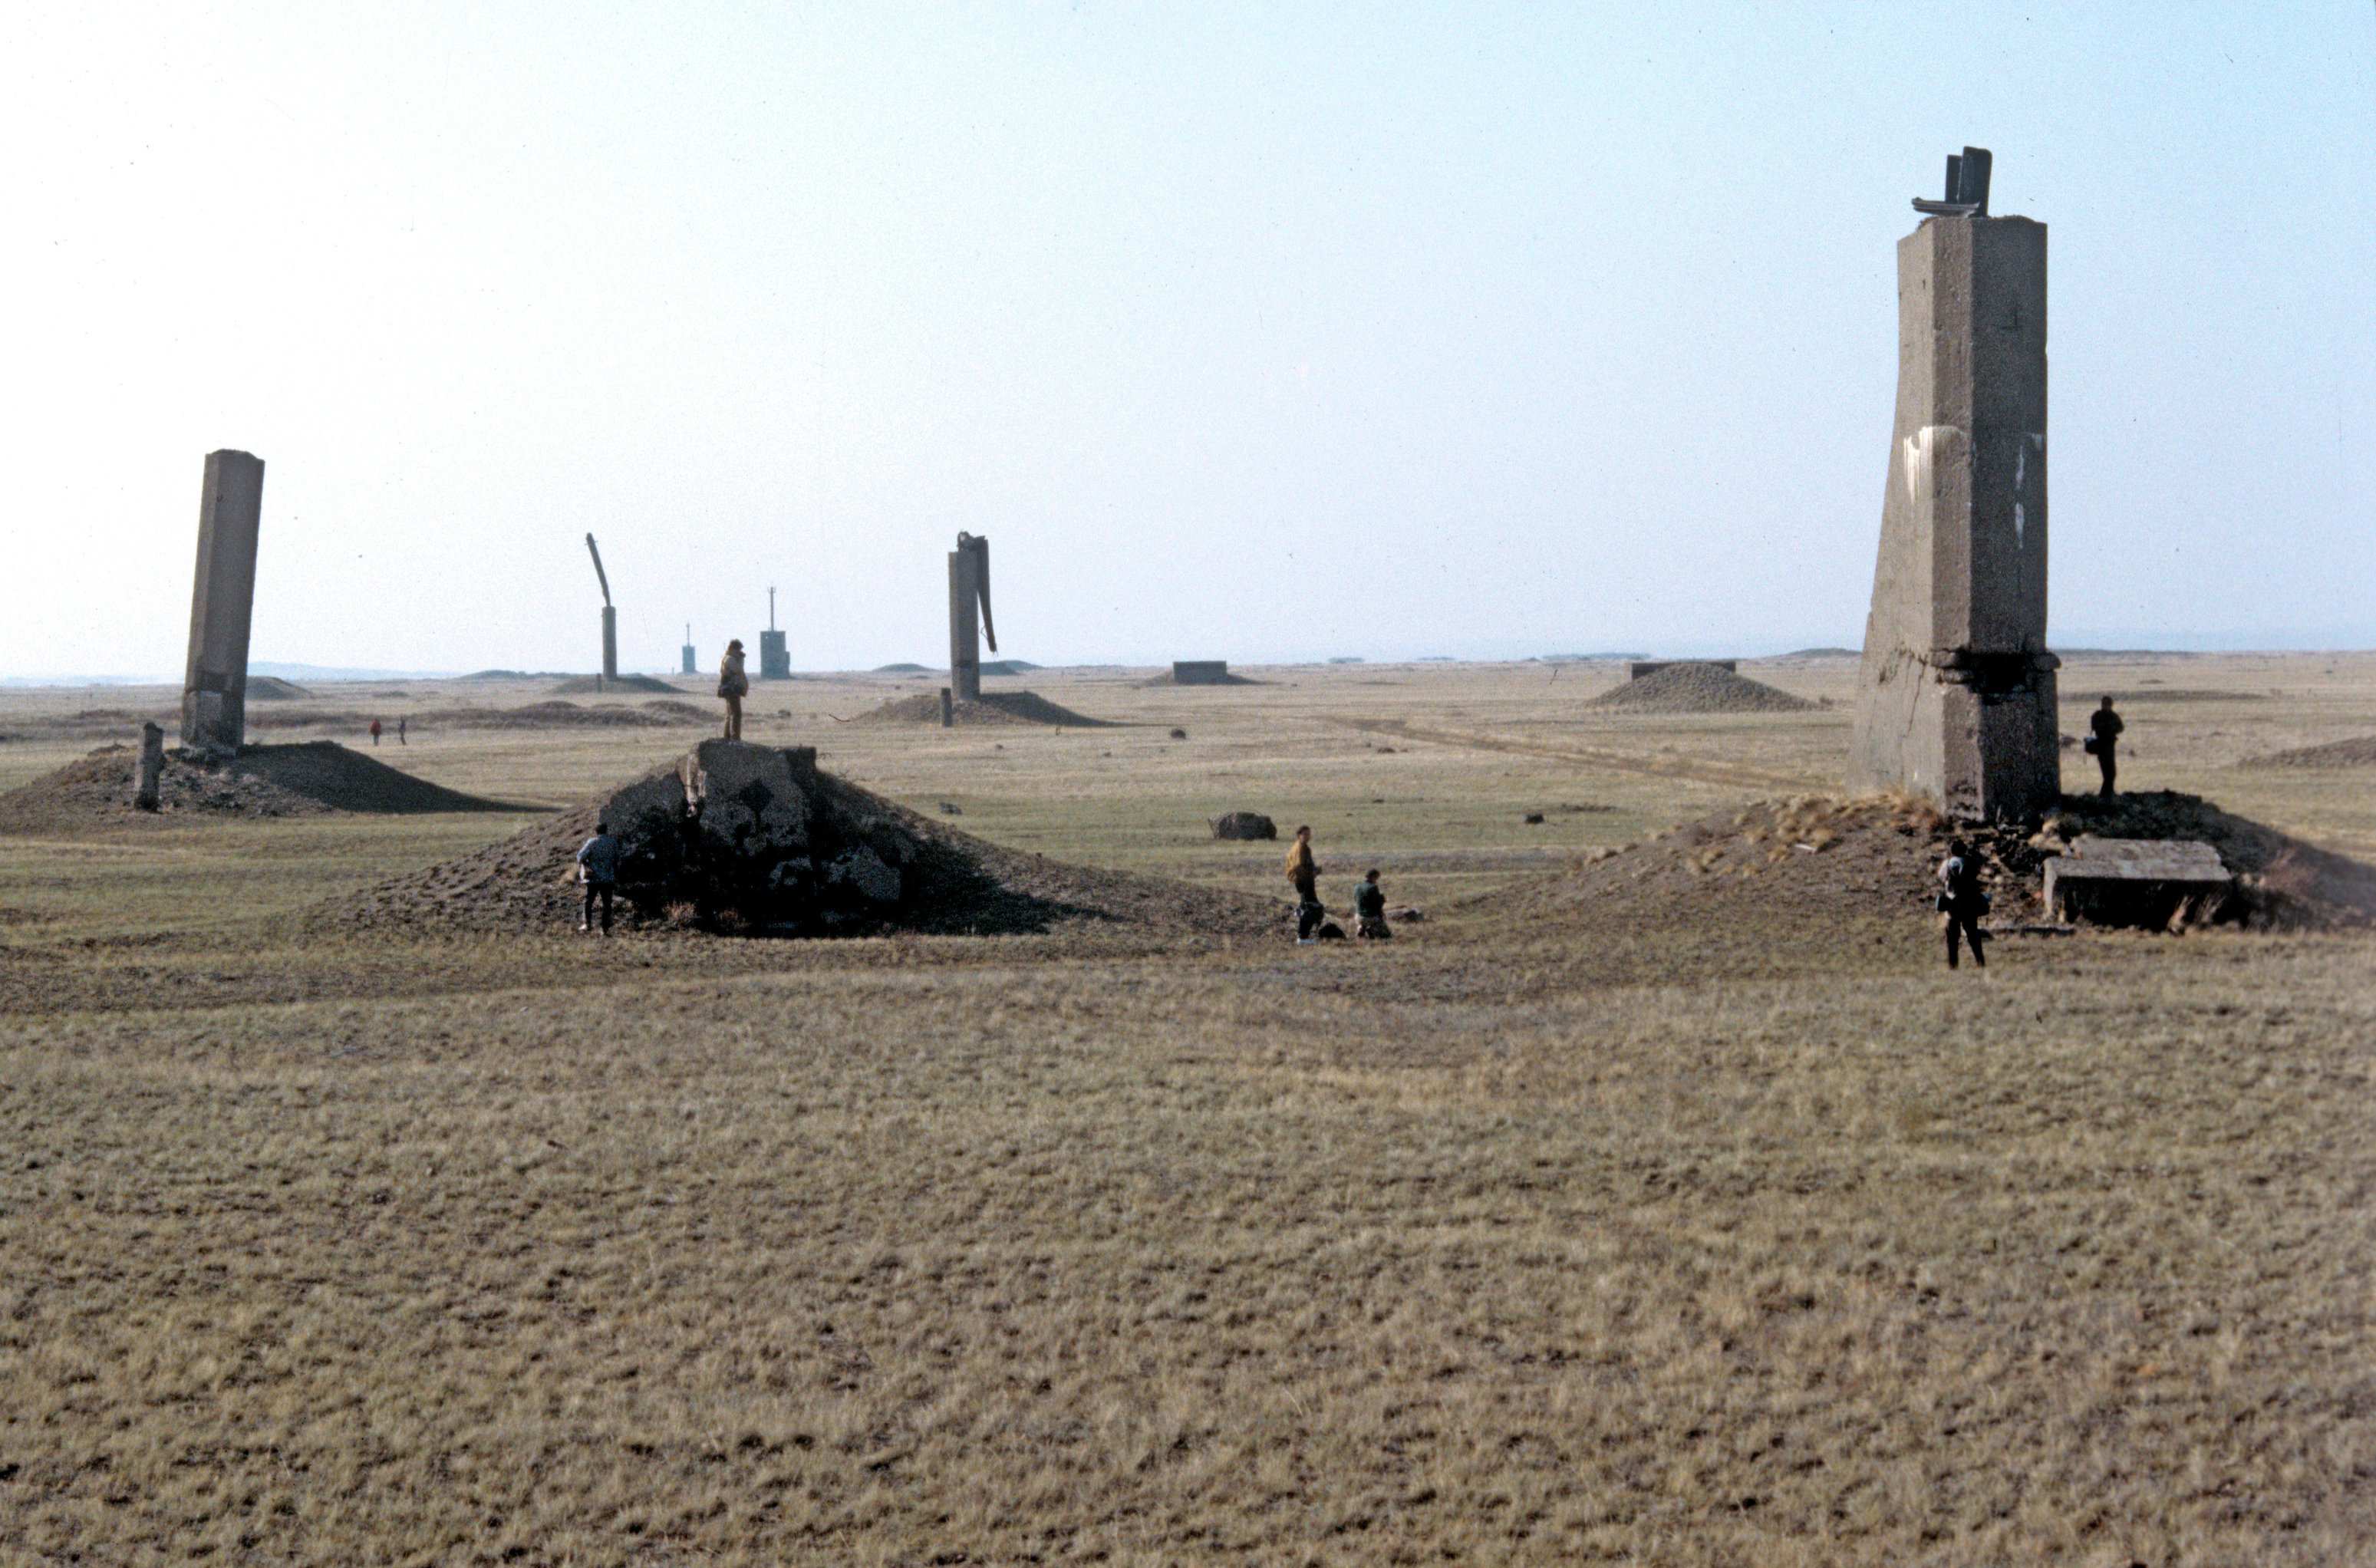 Semipalatinsk Polygon Kurchatov & the Polygon, Hot Destination: Soviet Nuclear Test Site Opens to Tourists ...